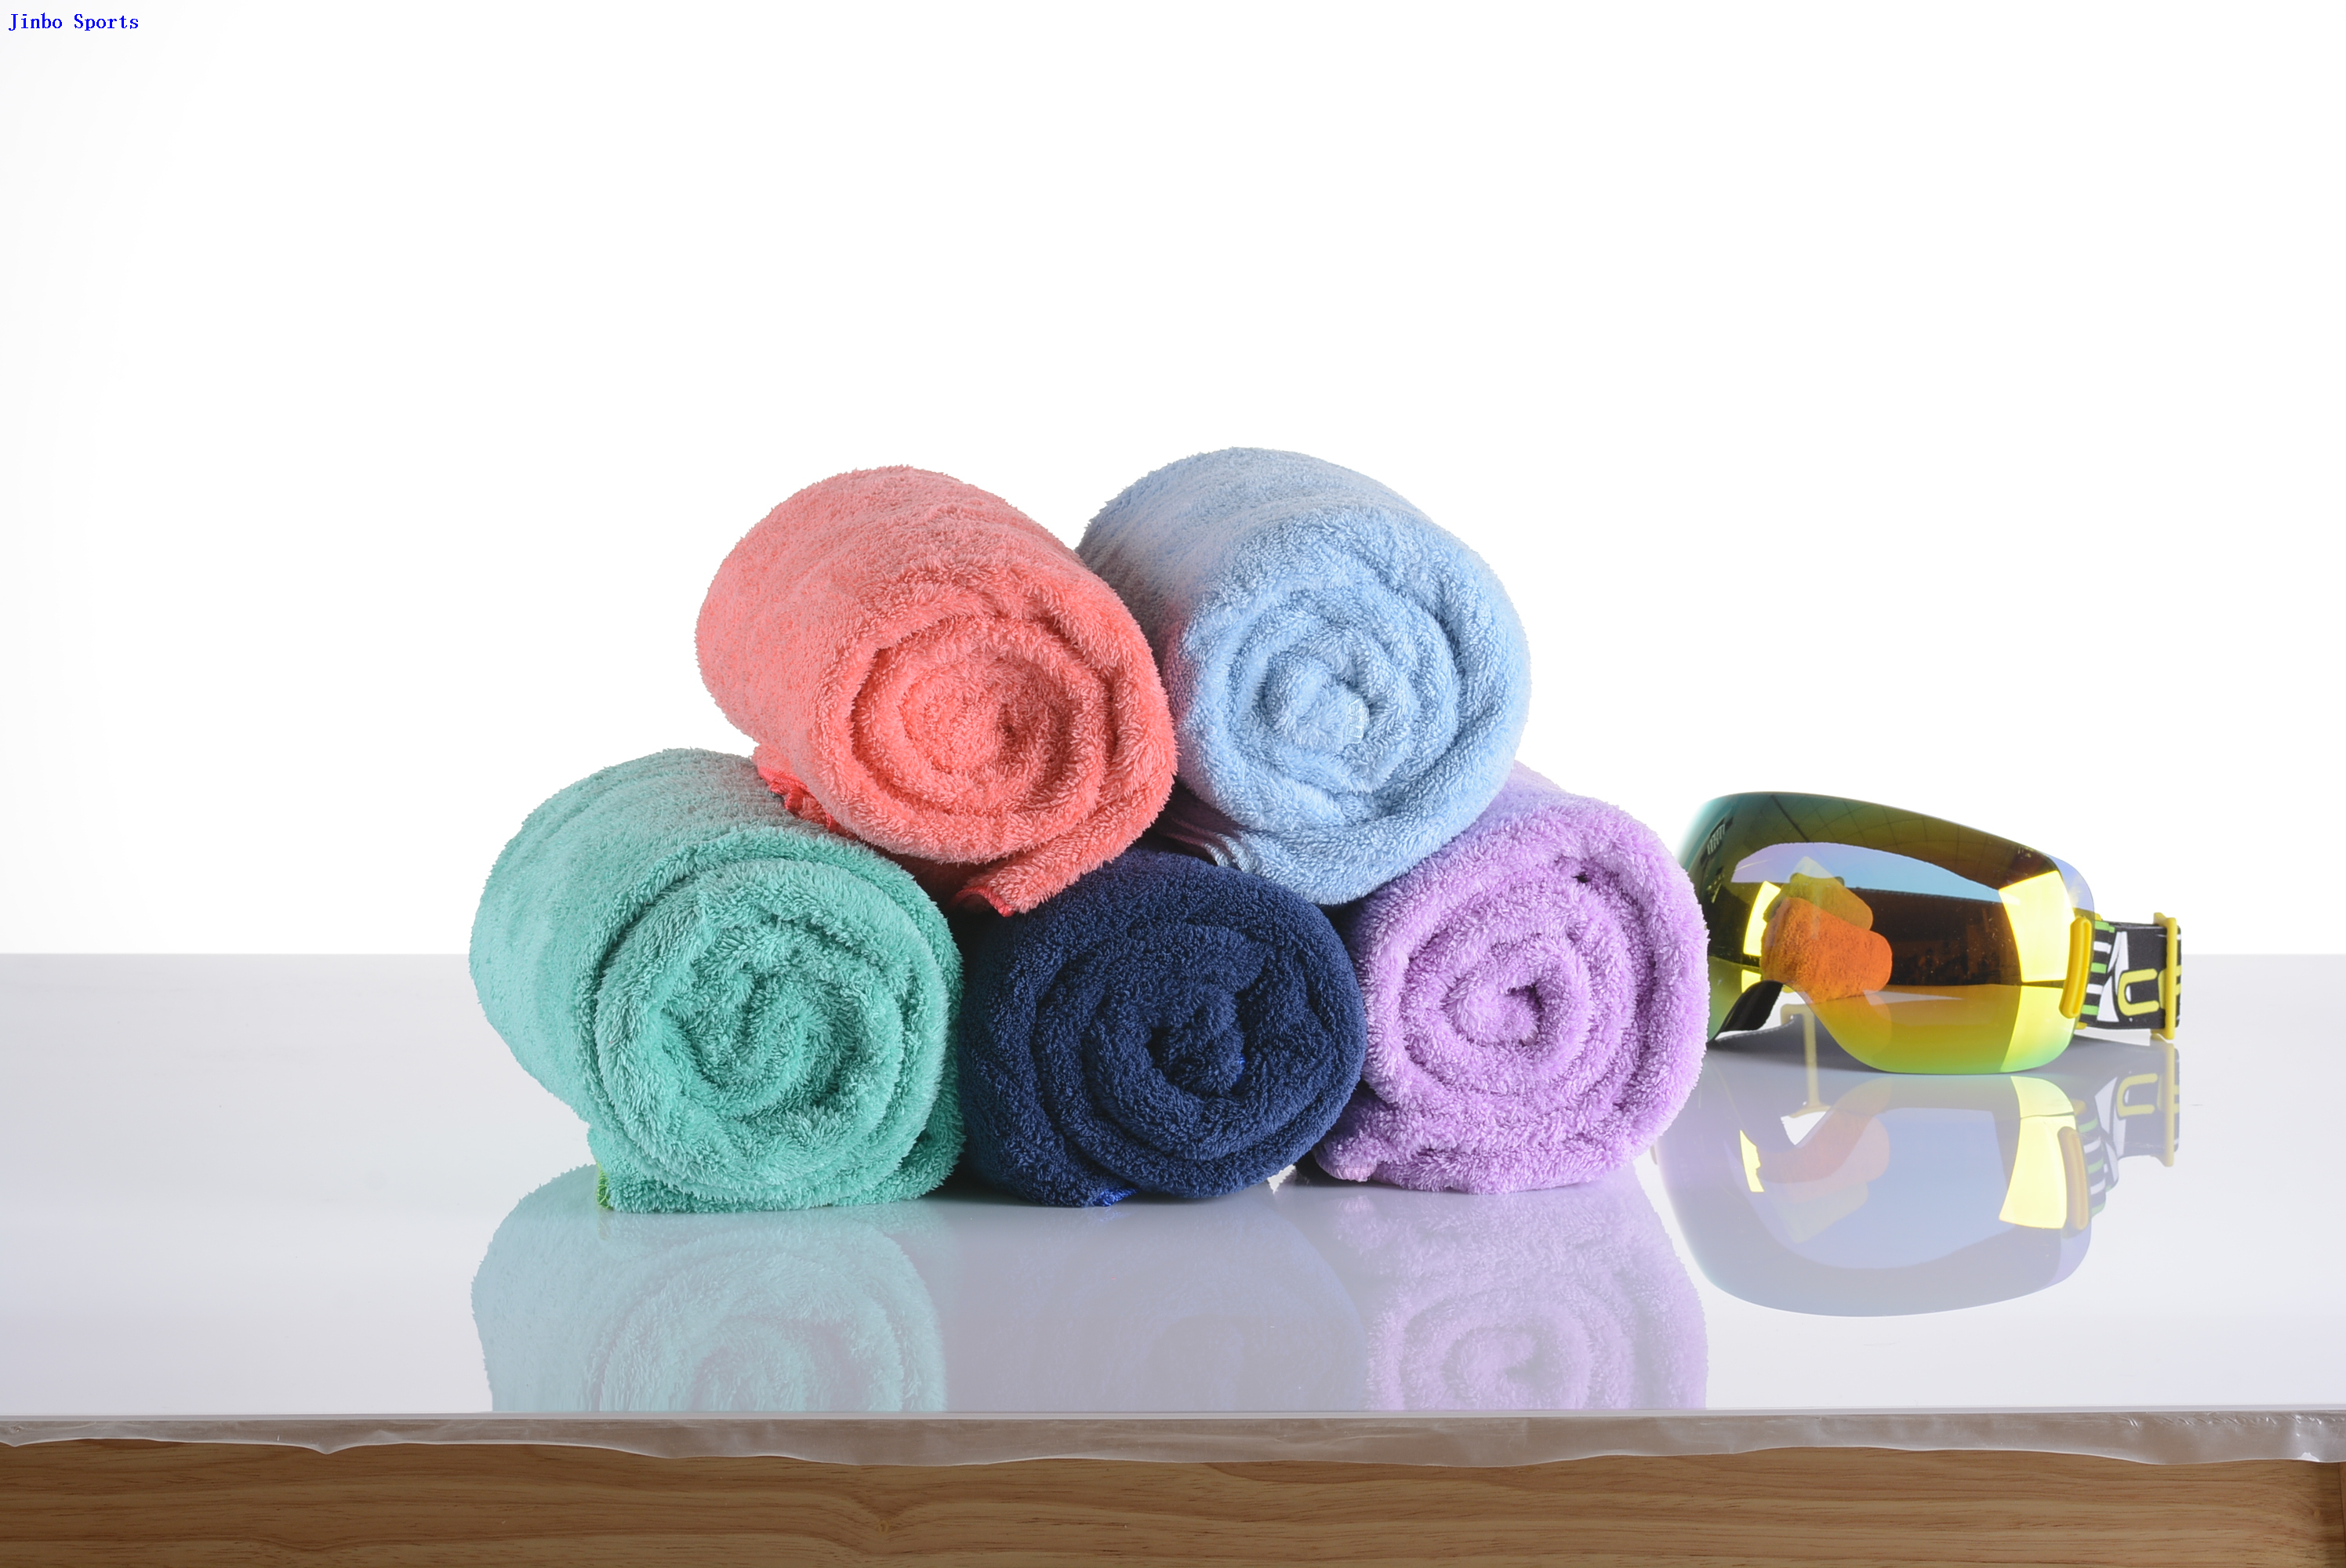 Beauty Towel Very Soft And Comfortable Strong Water Absorption for Facial Or Body